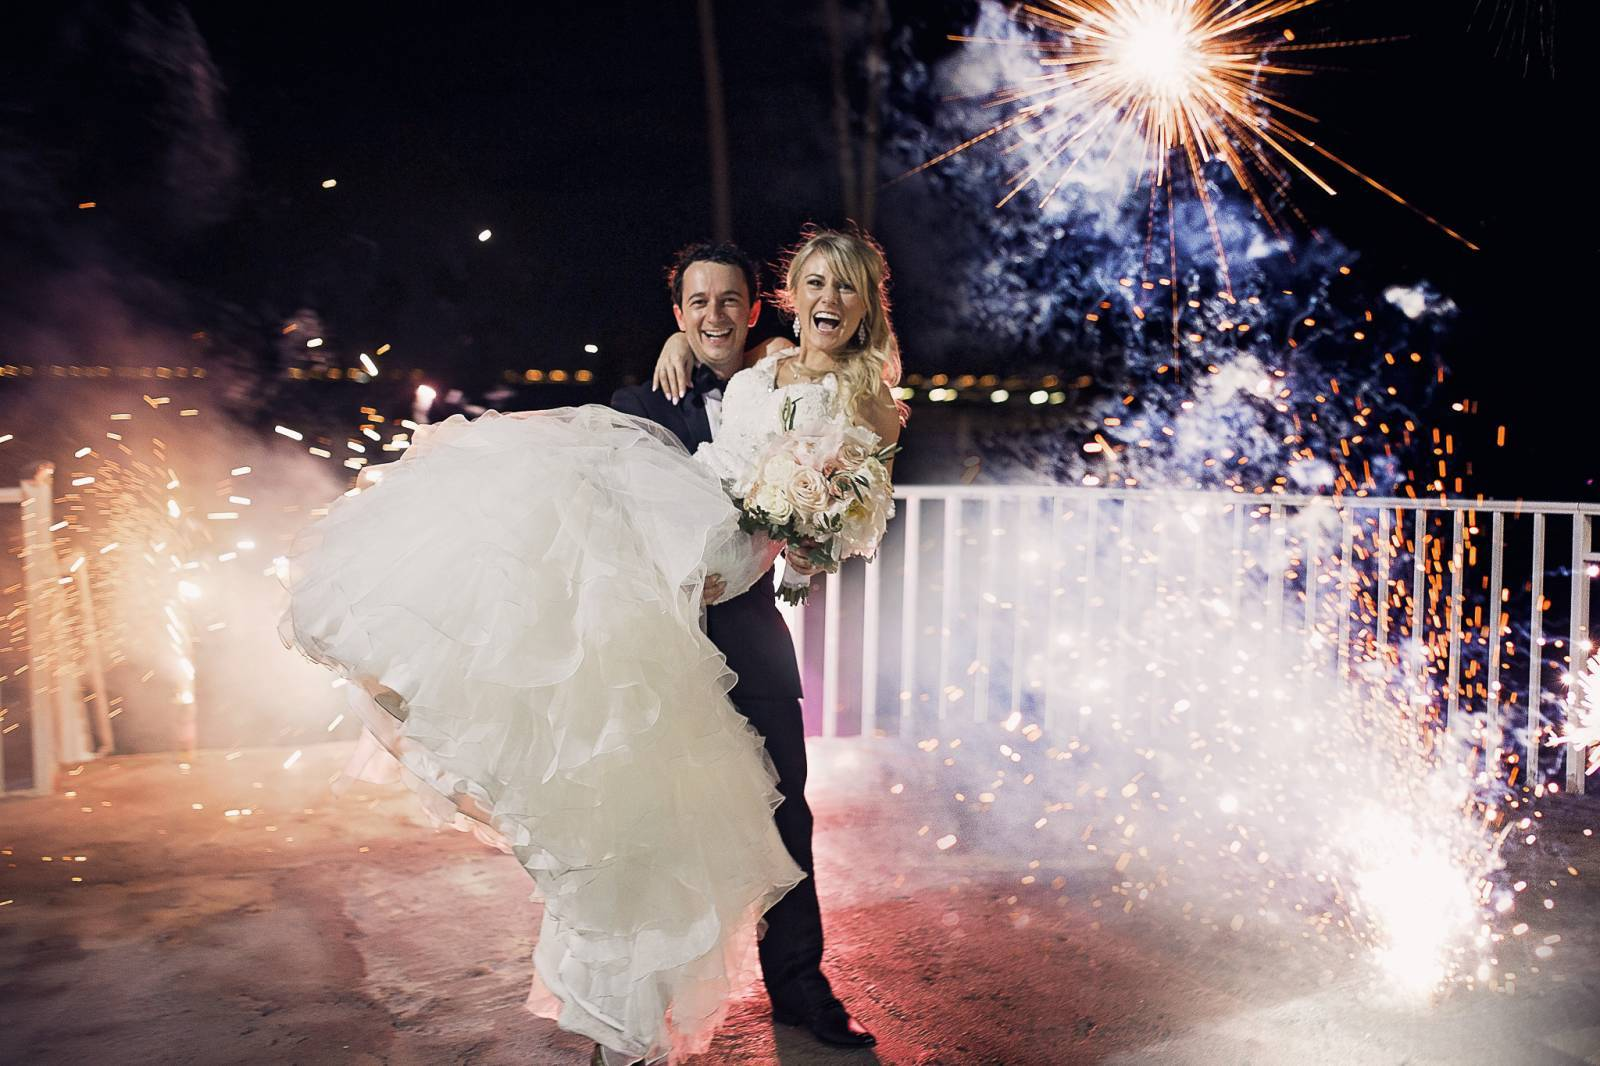 portrait of bride and groom under fireworks celebrating their wedding captured by Cat Lemus Photogra